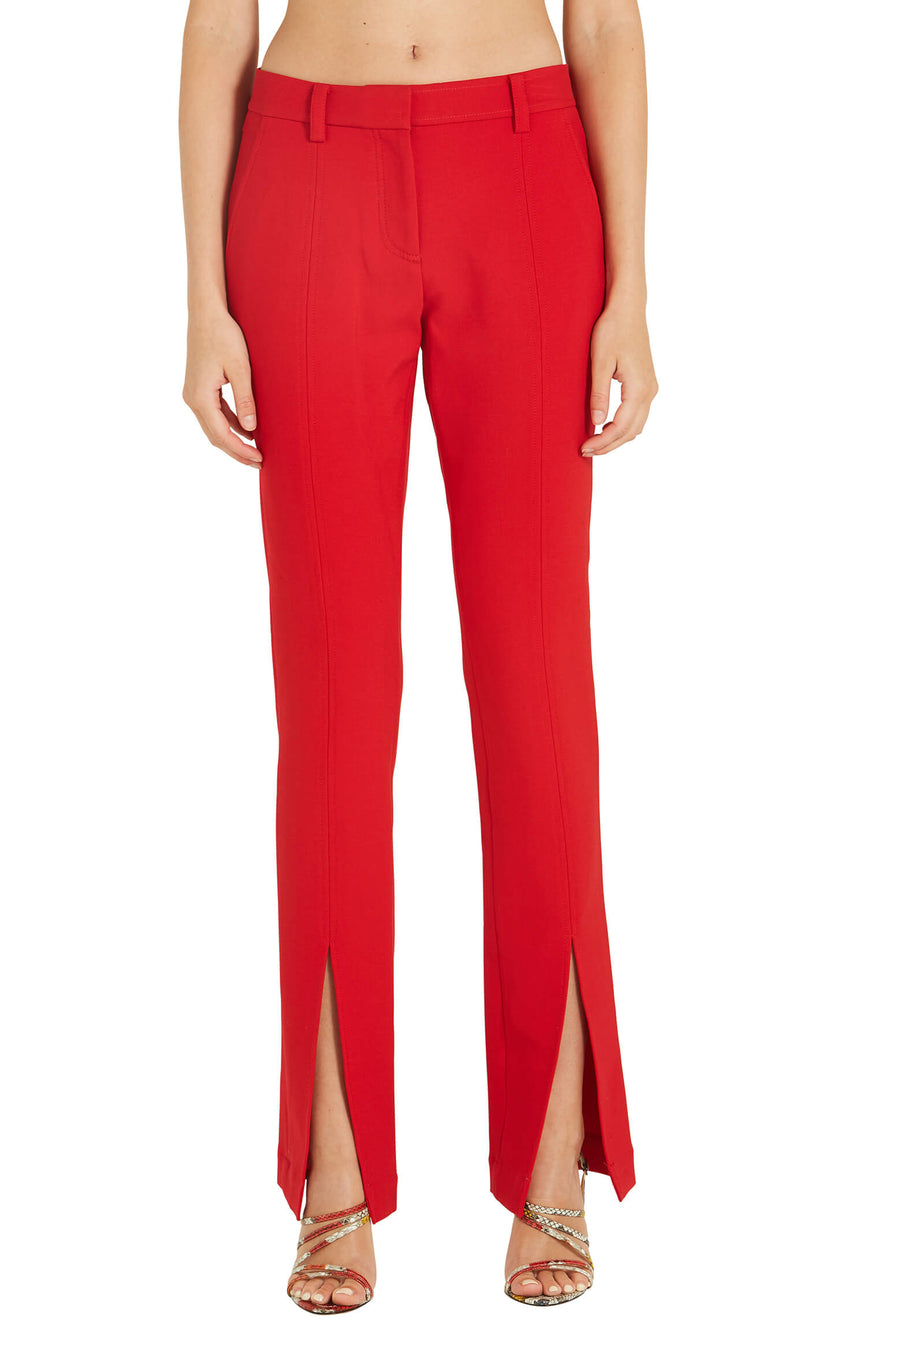 A.L.C. Conway Pants in Red from The New Trend Front Crop